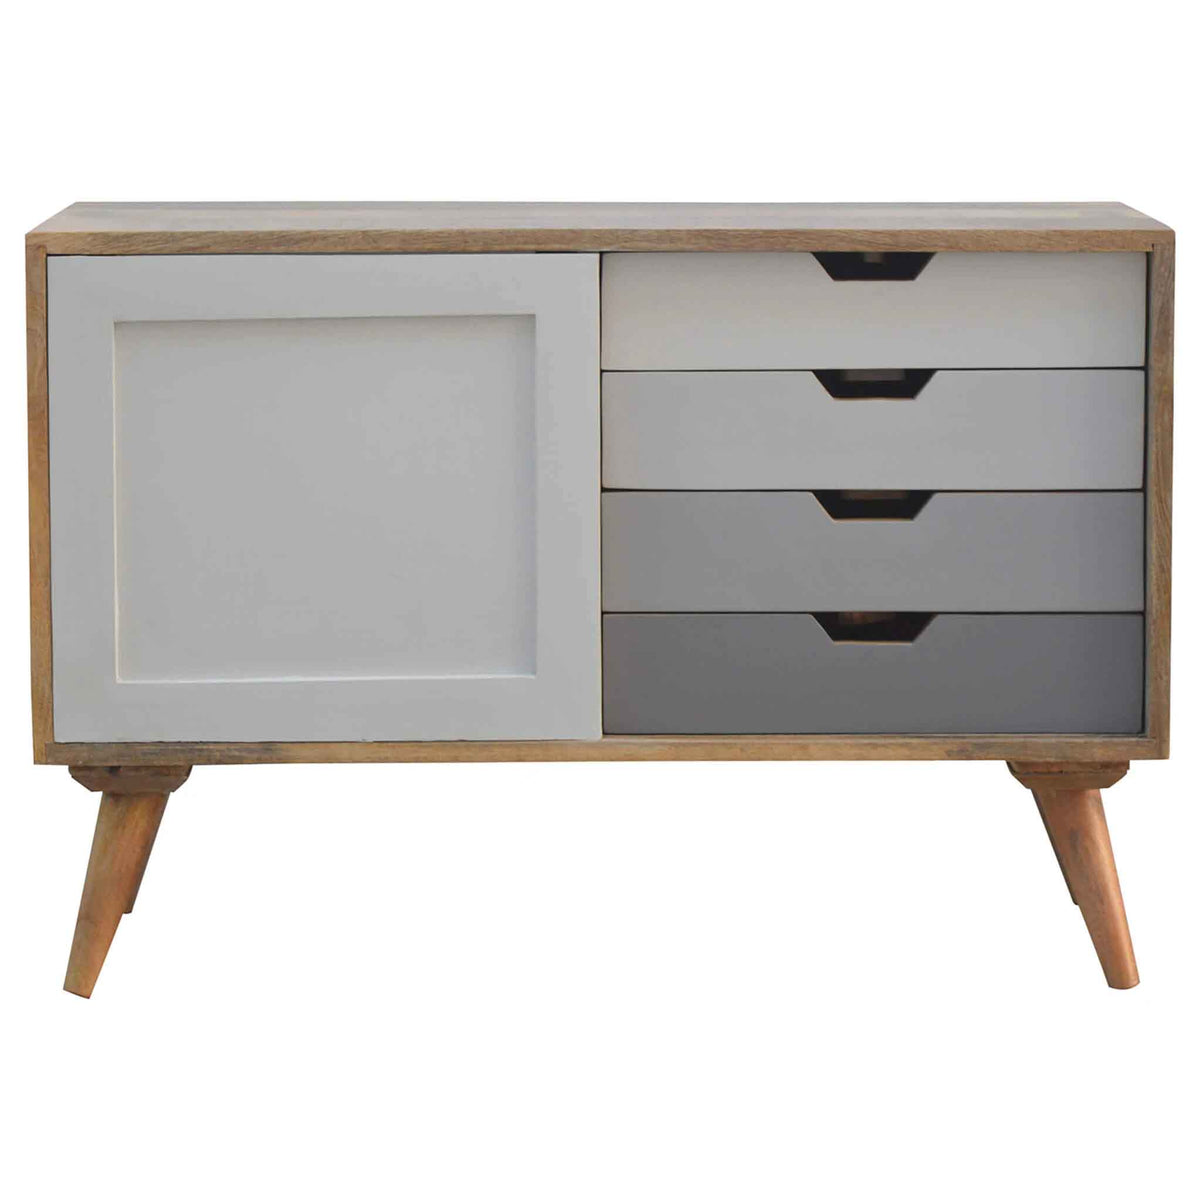 The Scandinavian Nordic Mango Wood Cabinet with Sliding Door from Roseland Furniture